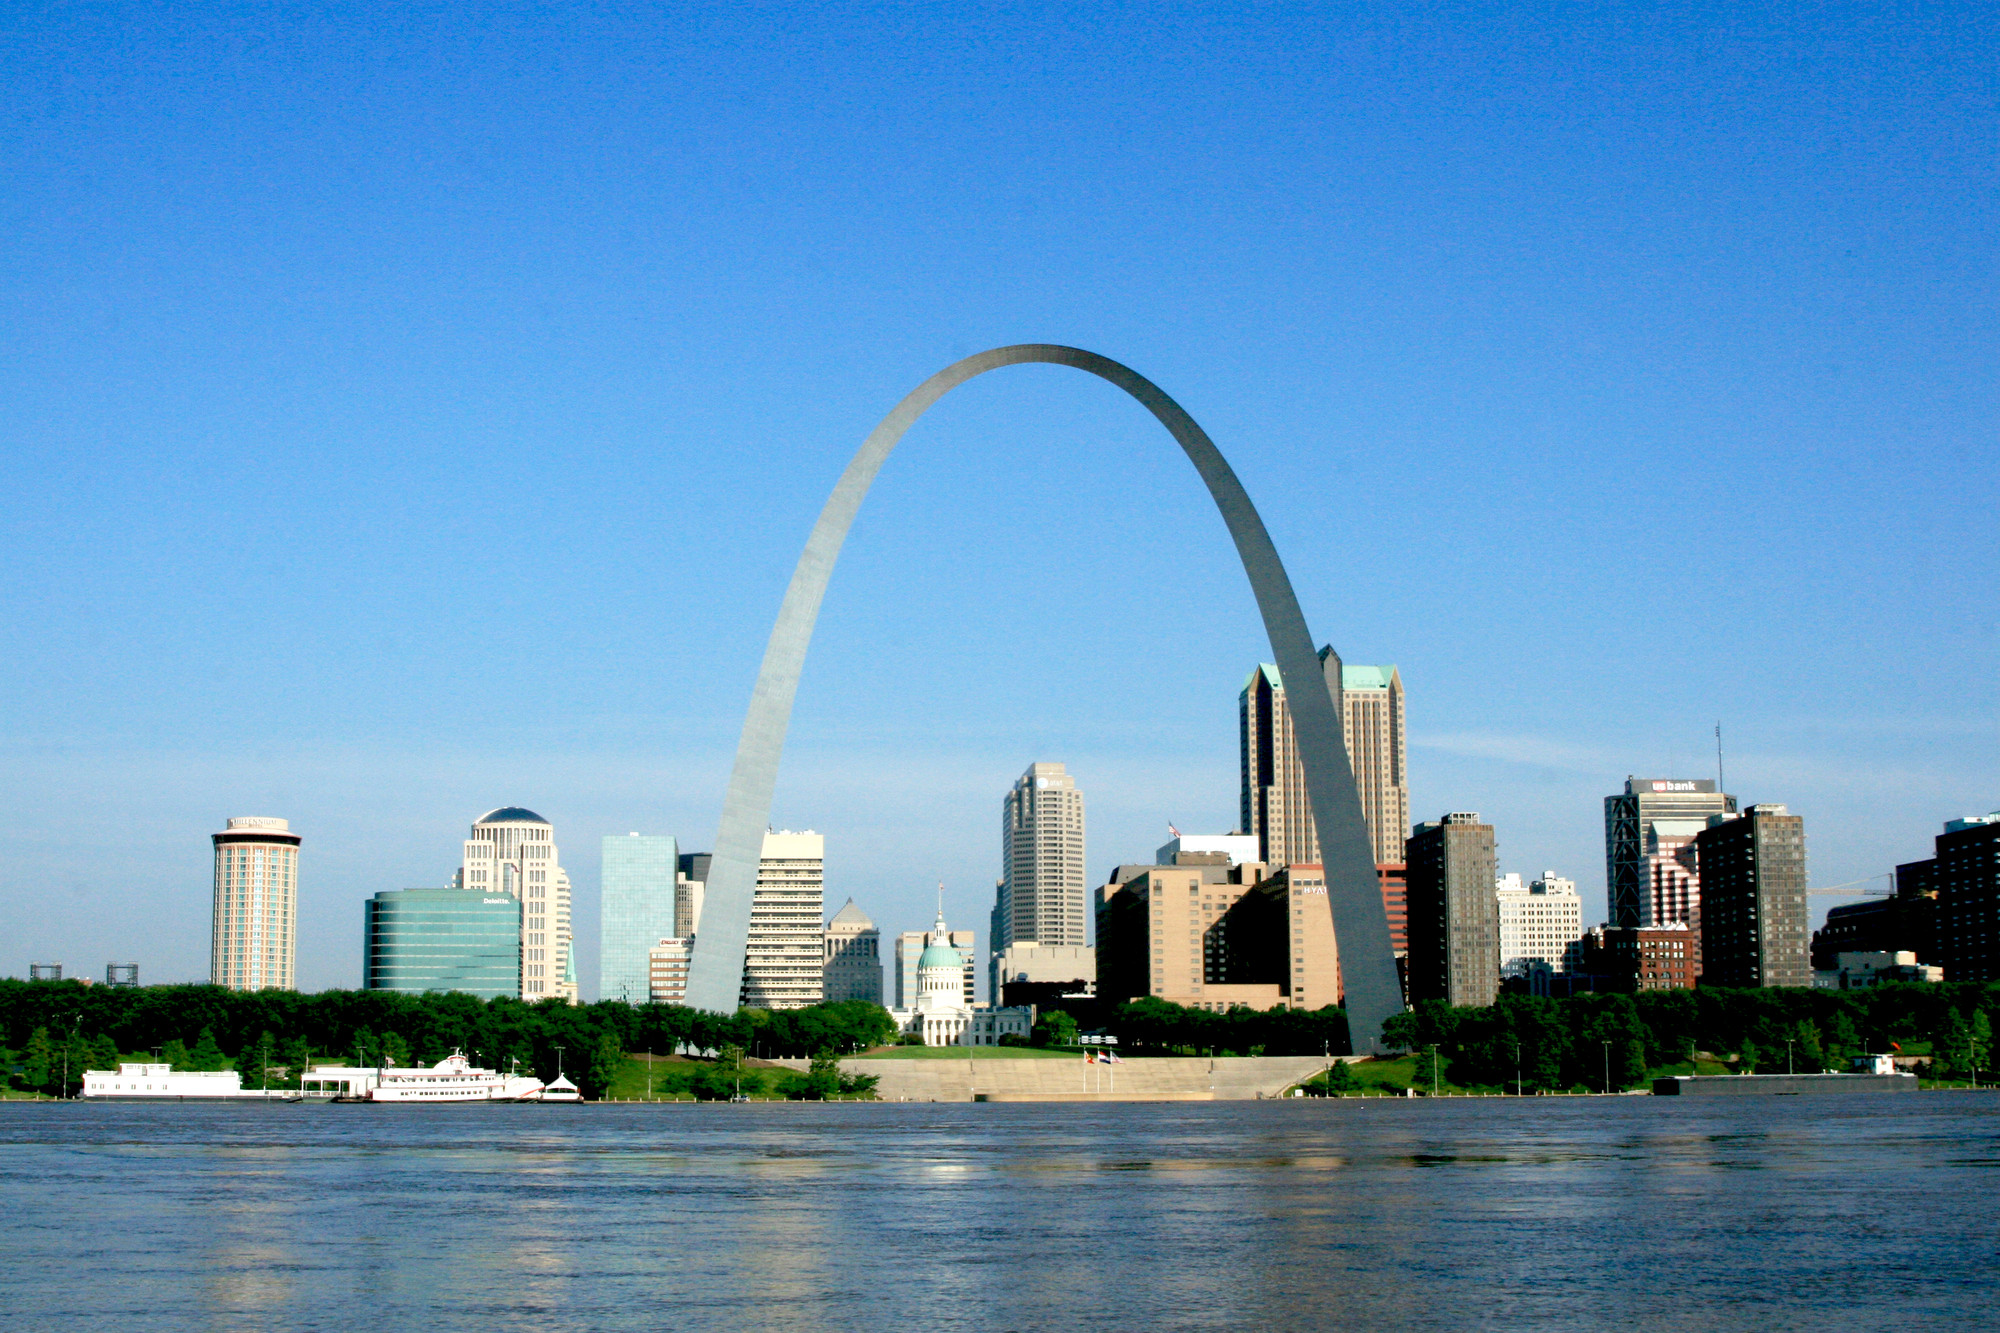 Like Father, Like Son: 4 Famous Architecture Dynasties, Gateway Arch / Eero Saarinen. Image Courtesy of Flickr CC Jefferson National Expansion Memorial, NPS https://www.flickr.com/photos/jeffnps/